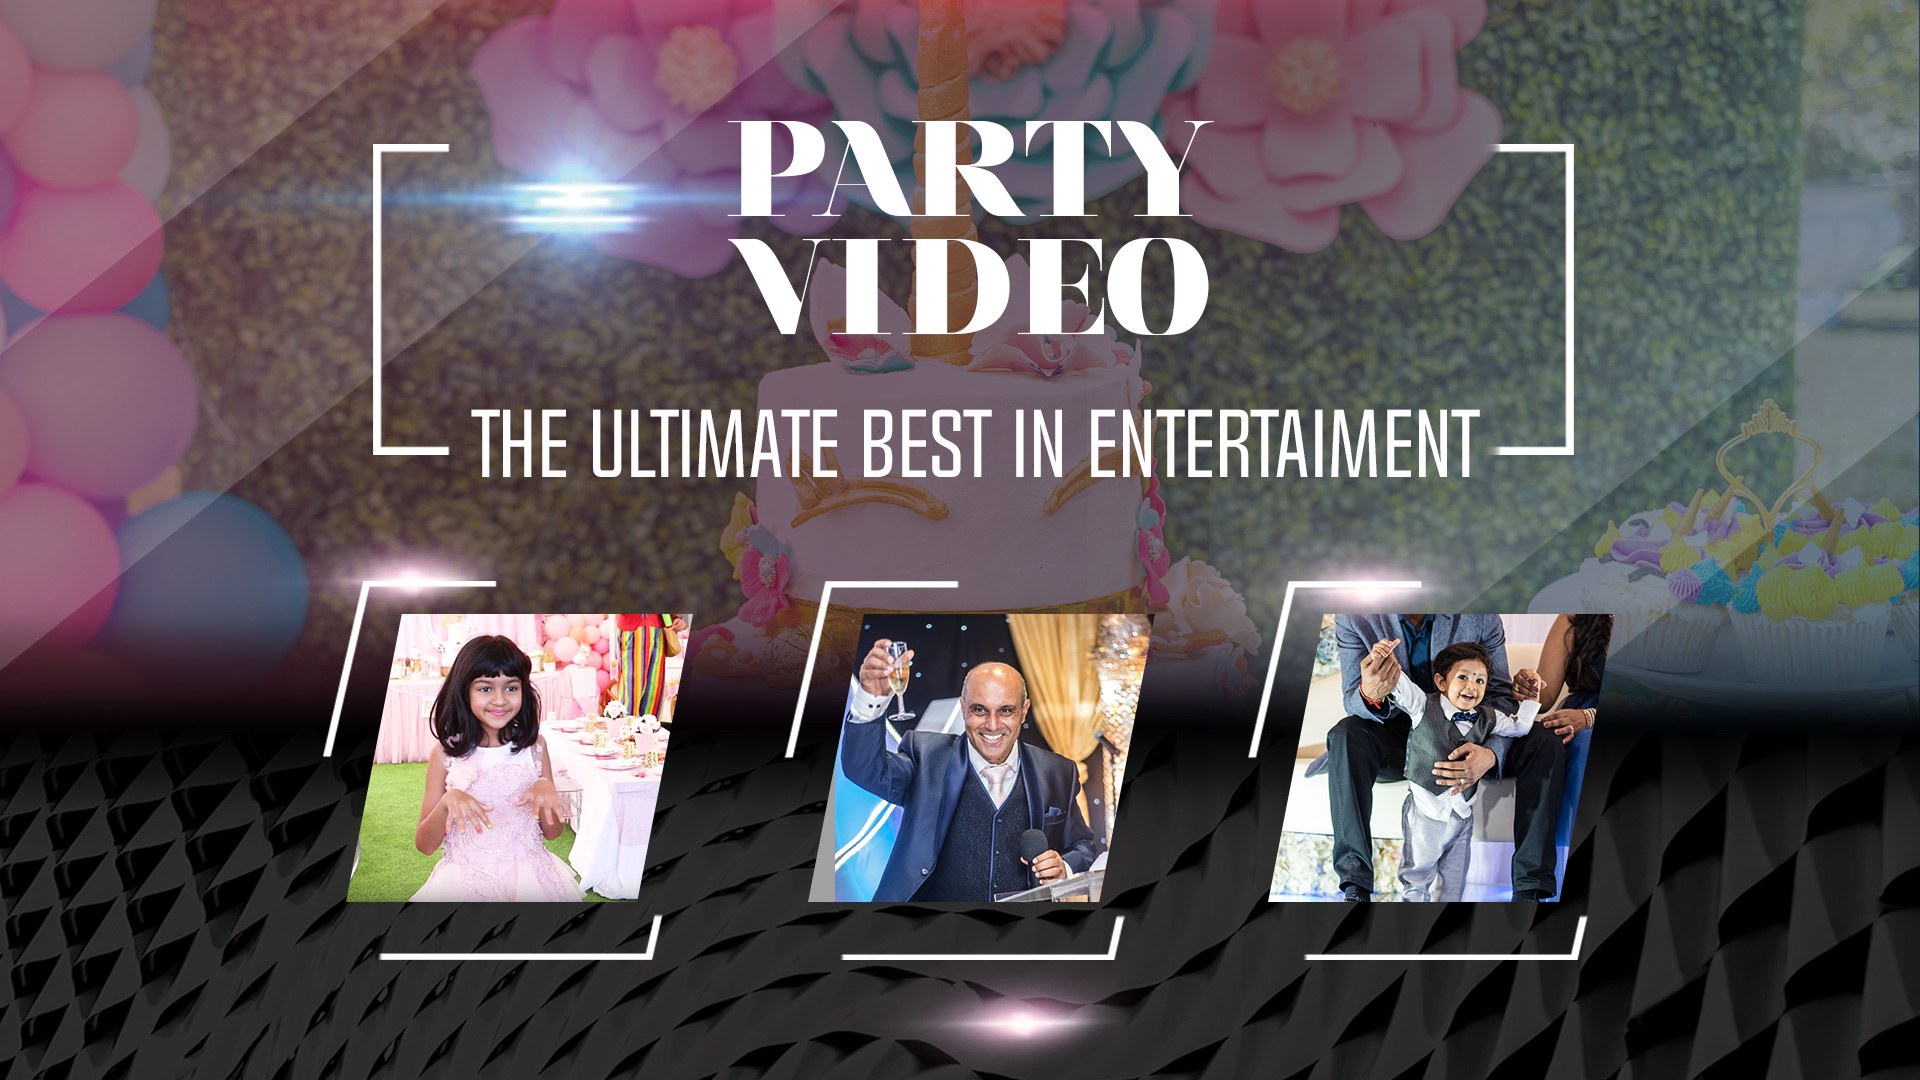 Party Video